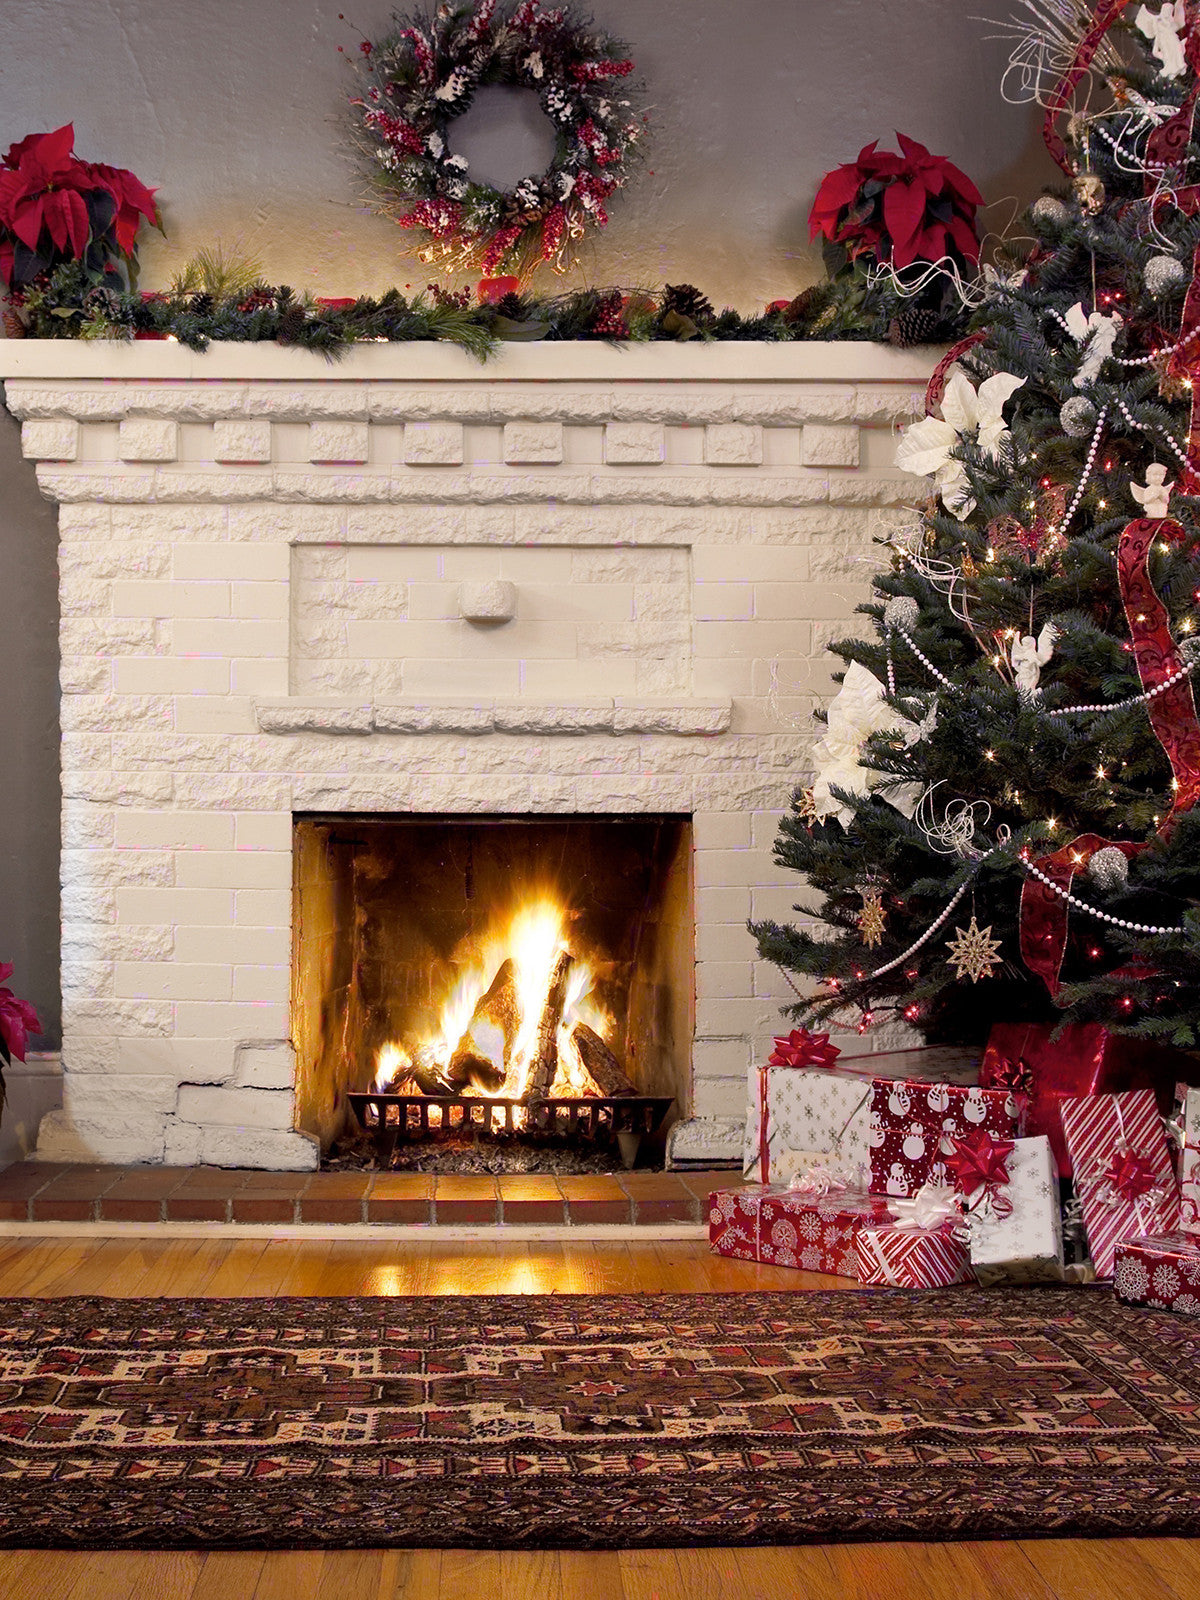 Fireplace Christmas Printed Photo Background / 7819